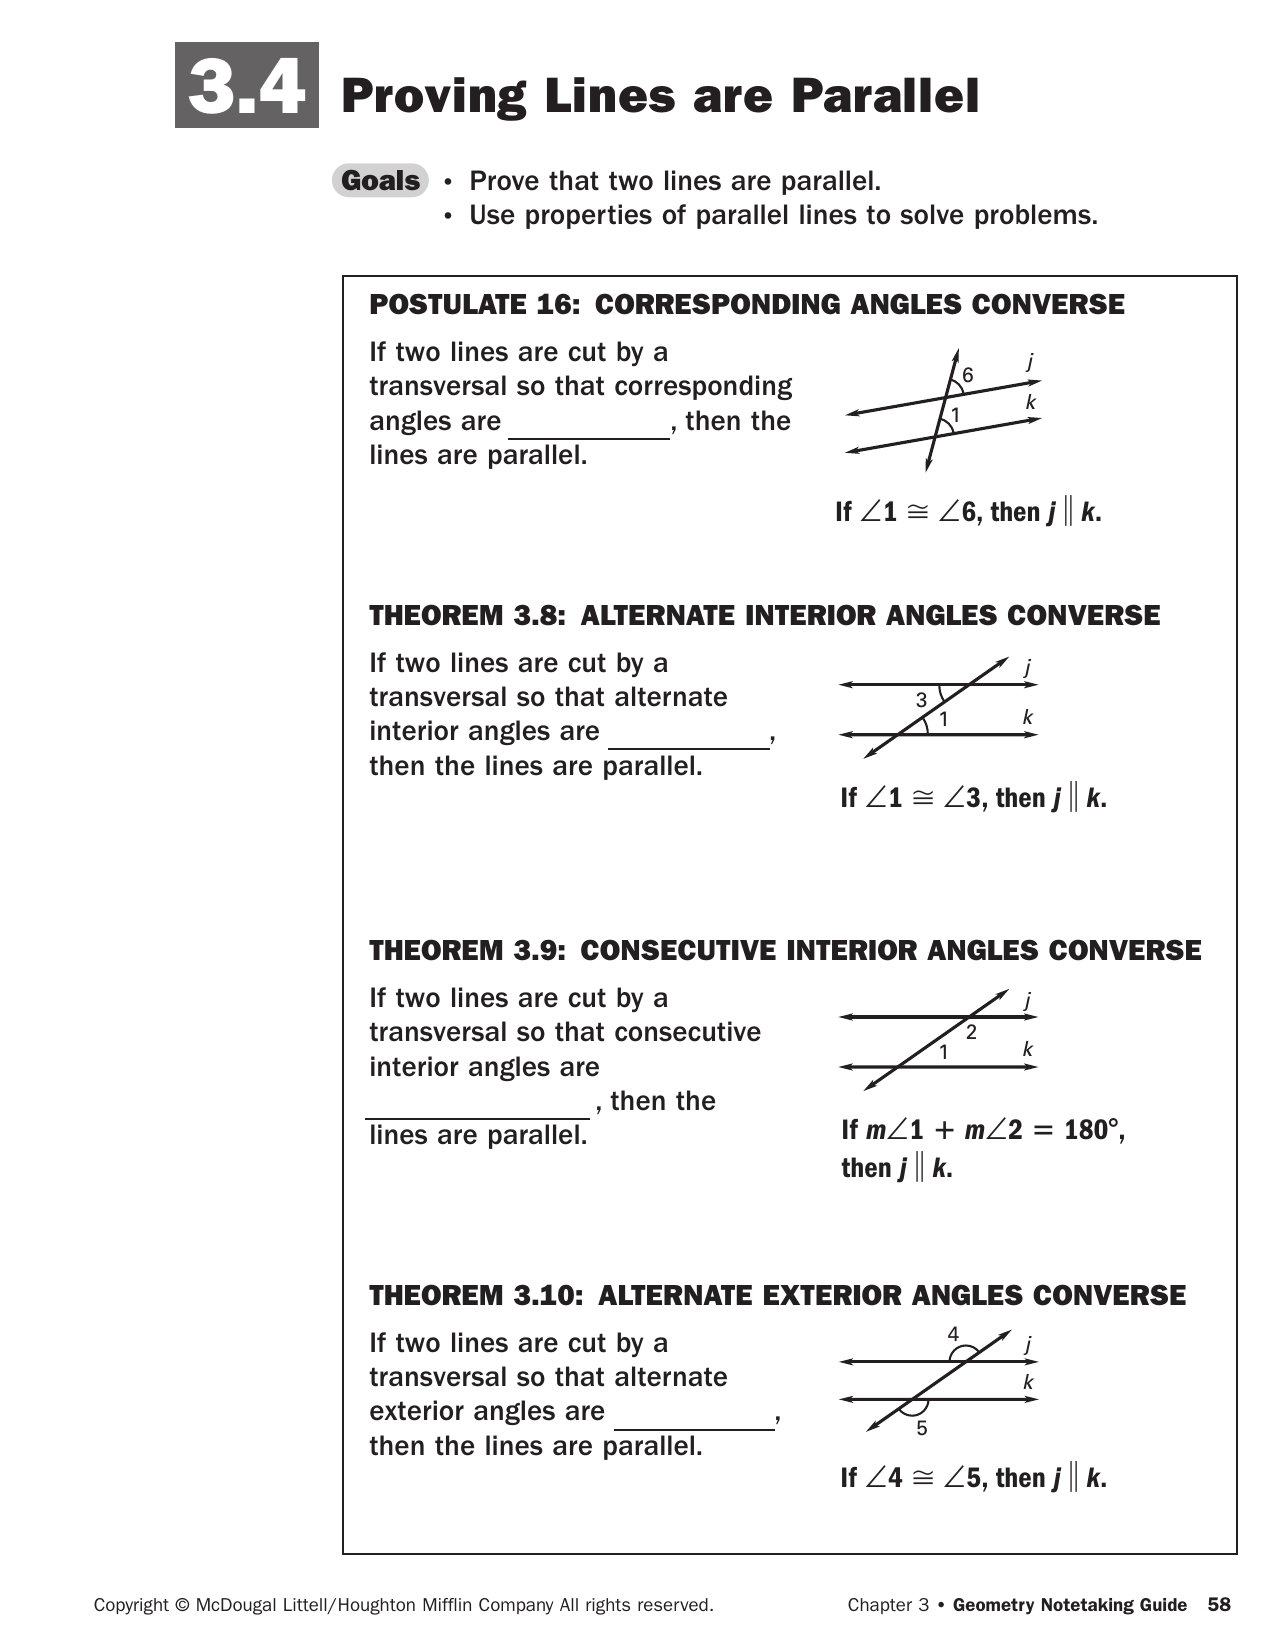 Alternate Interior Angles Converse Theorem